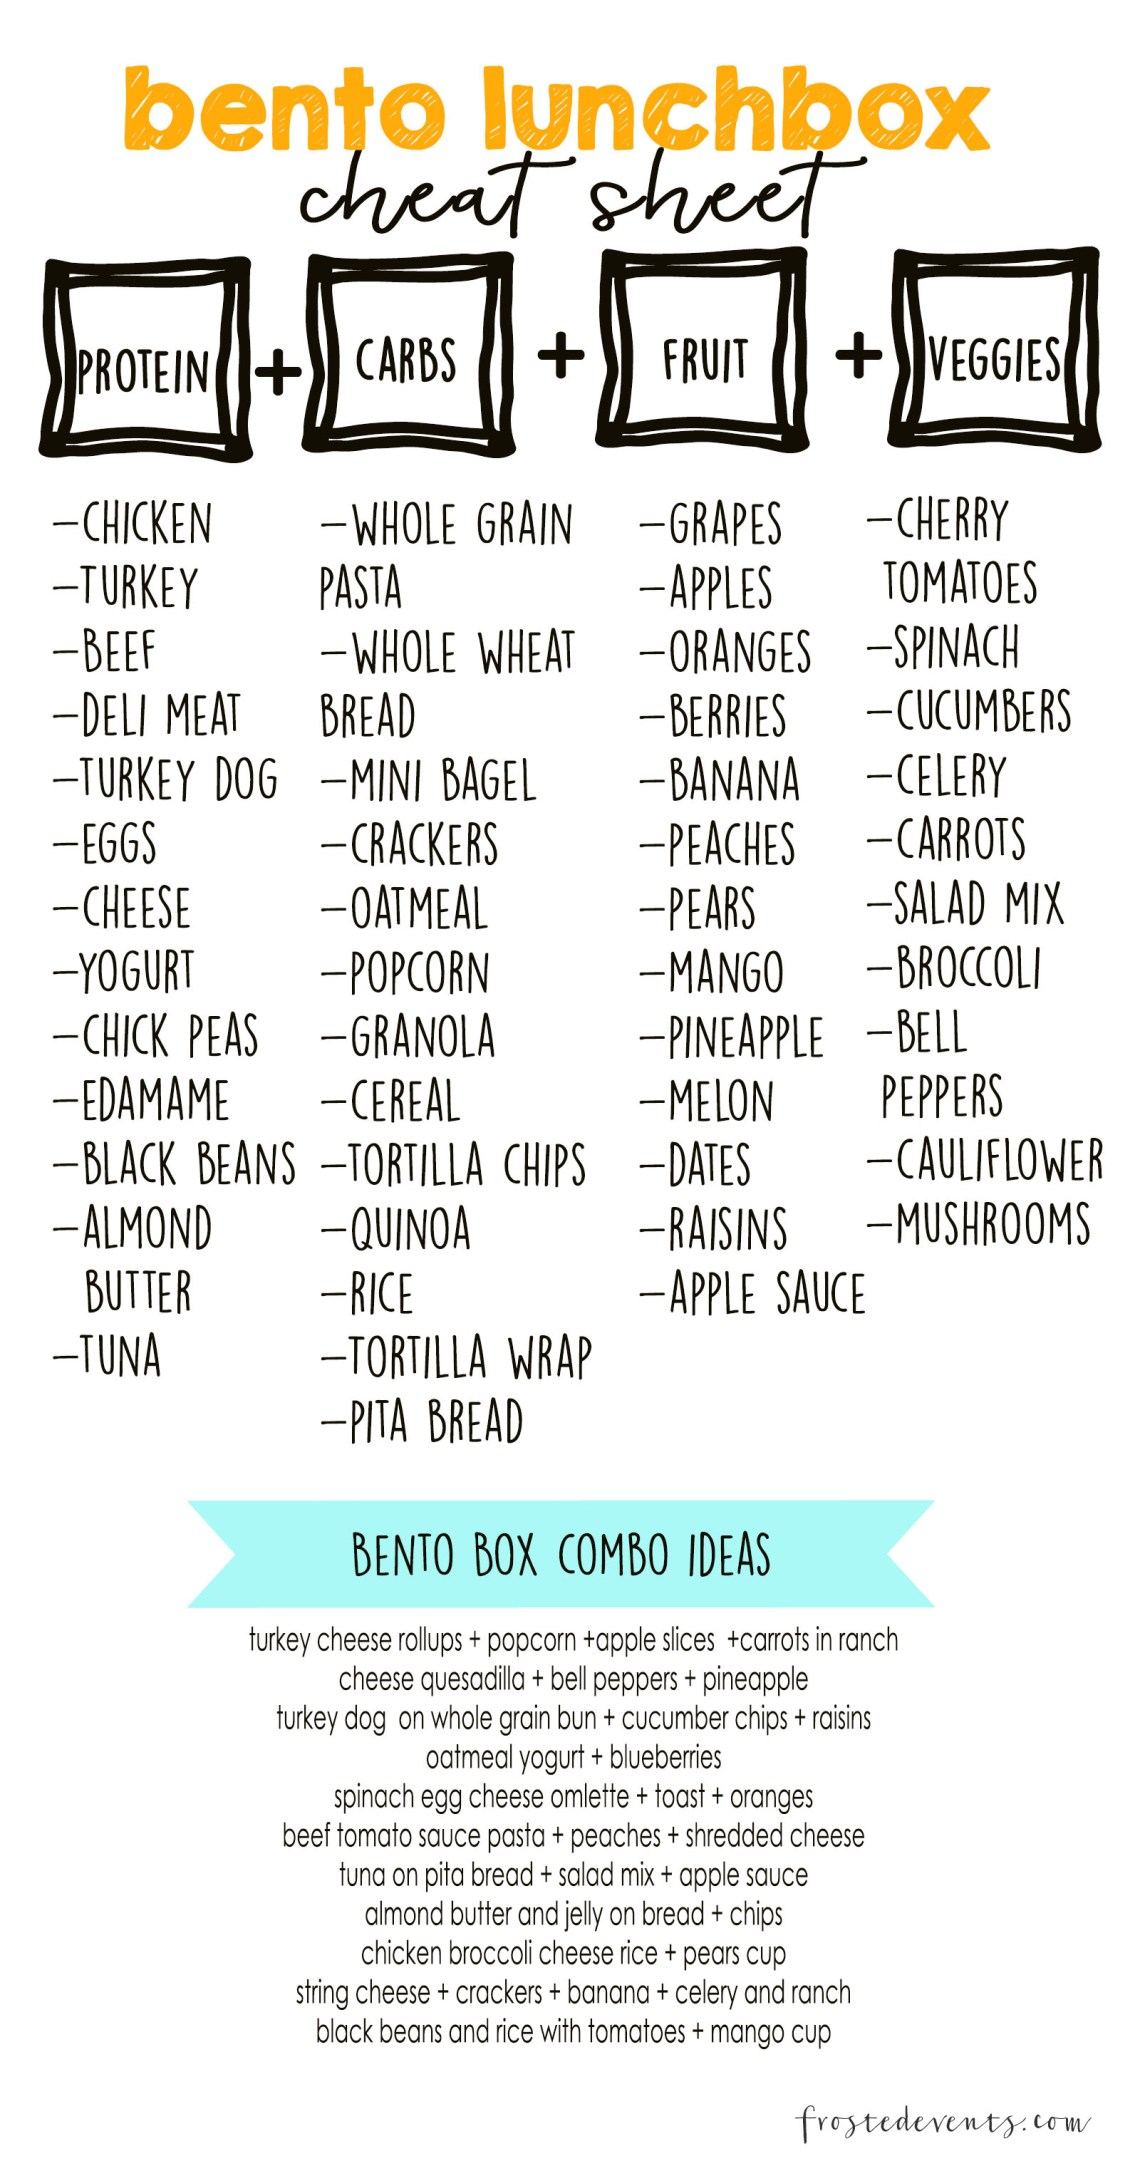 Bento Lunch Box Lunch Ideas Printable Lunch List